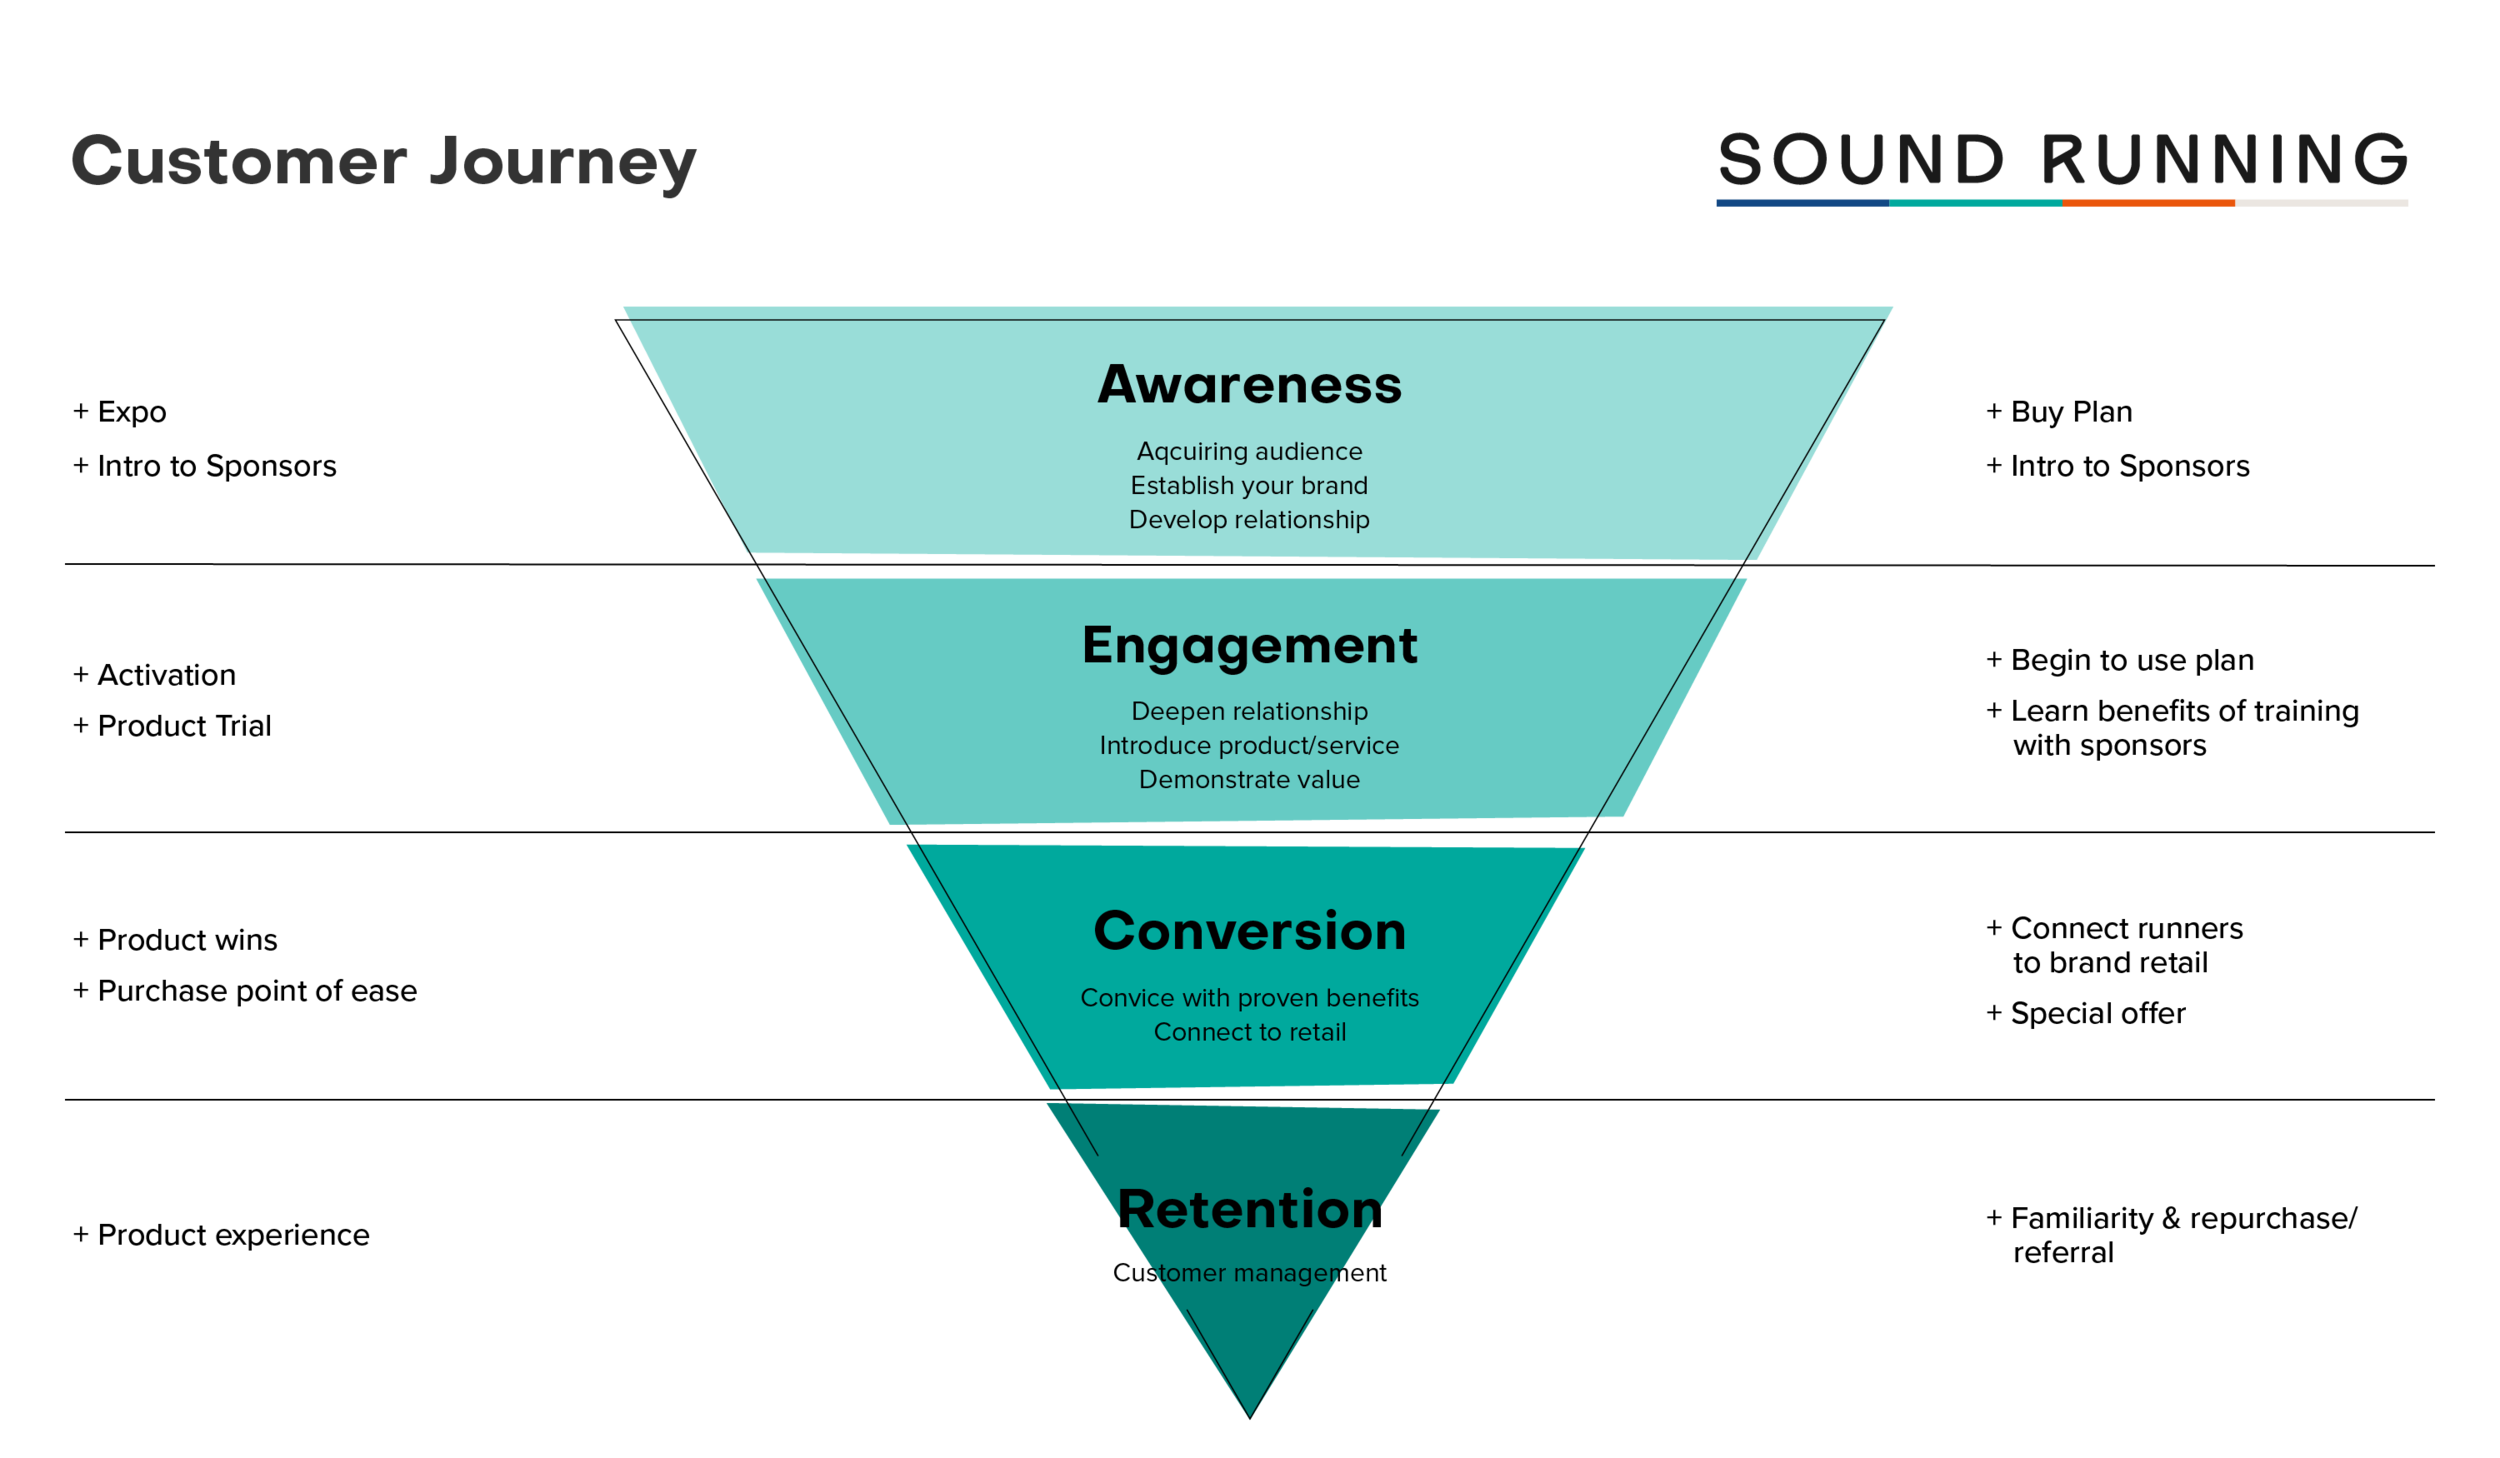 Customer Journey@2x.png